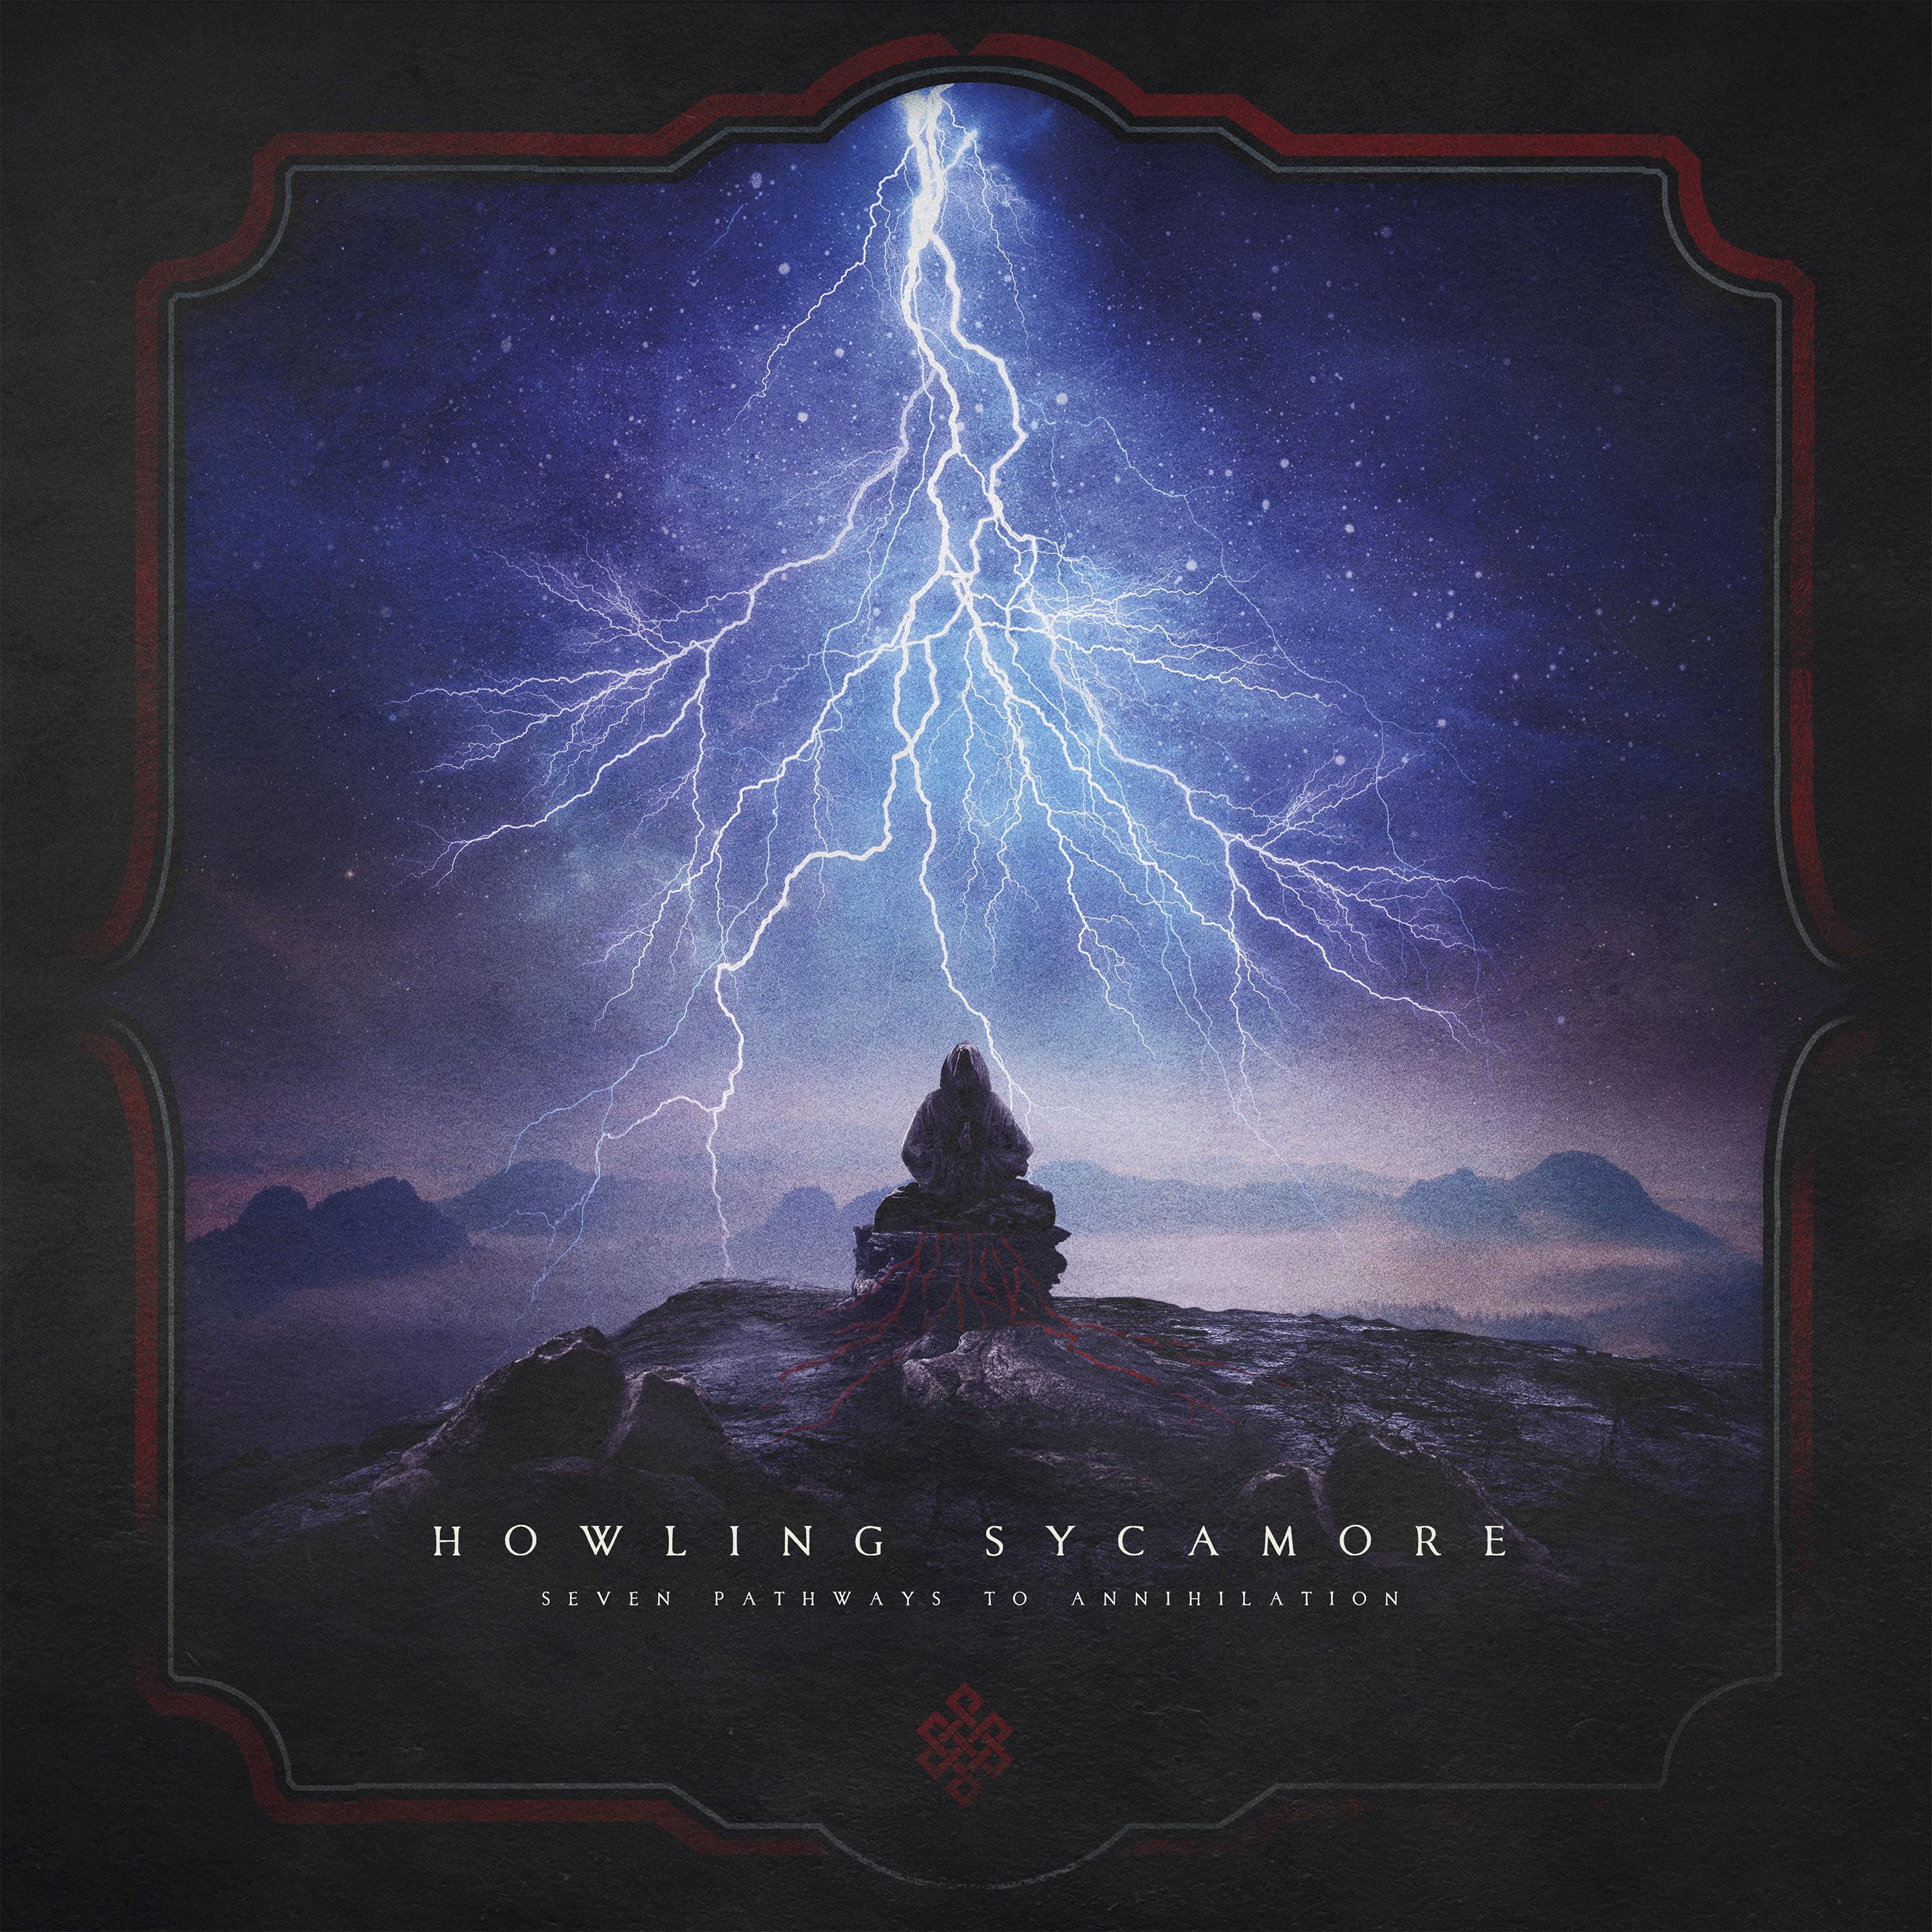 howling-sycamore-seven-pathways-to-annihilation-extreme-ausloten-album-review